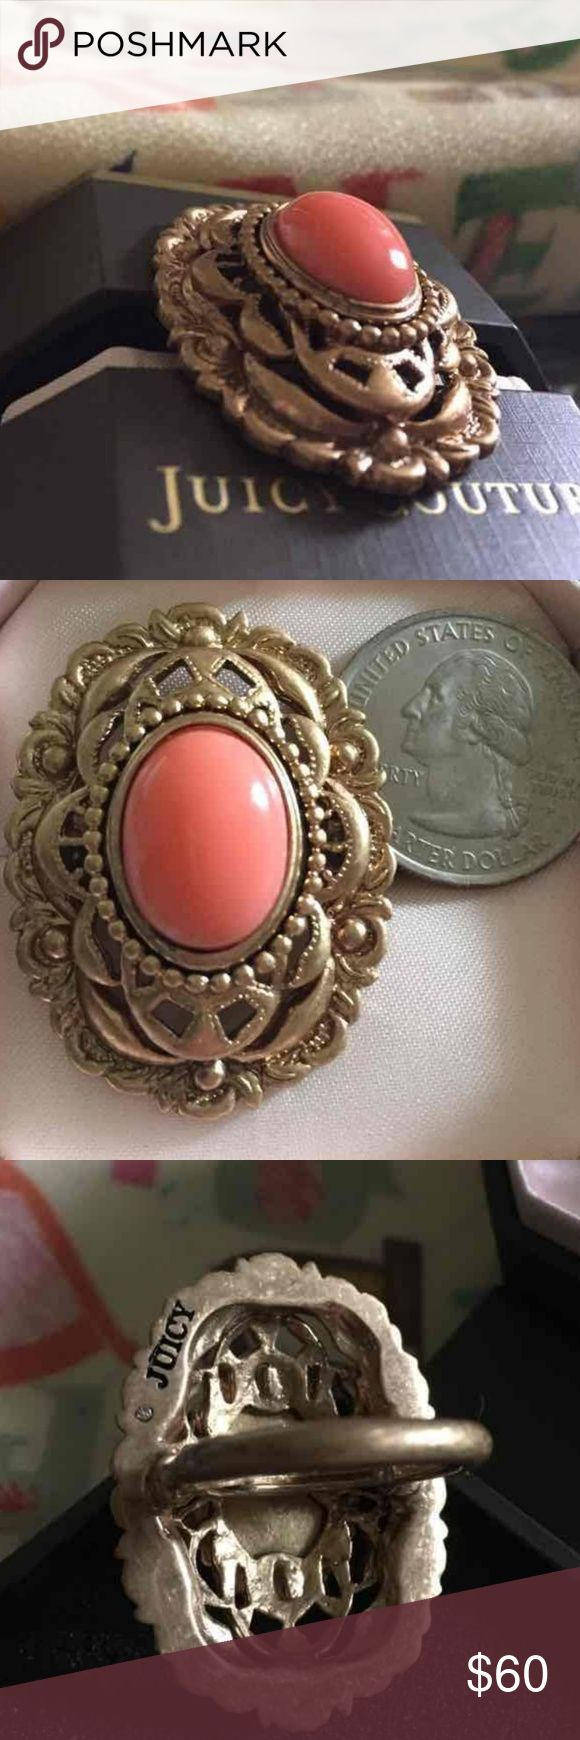 Juicy Couture Antique Gold Coral Ring For your consideration is a rare vintage Juicy Couture antique gold coral ring in excellent previously loved condition. The size is Juicy adjustable from approximately a size 7 to an 8.5. The coral is nice and glossy and the overall weight is substantial. Juicy box included for storage. Thank you. Juicy Couture Jewelry Rings